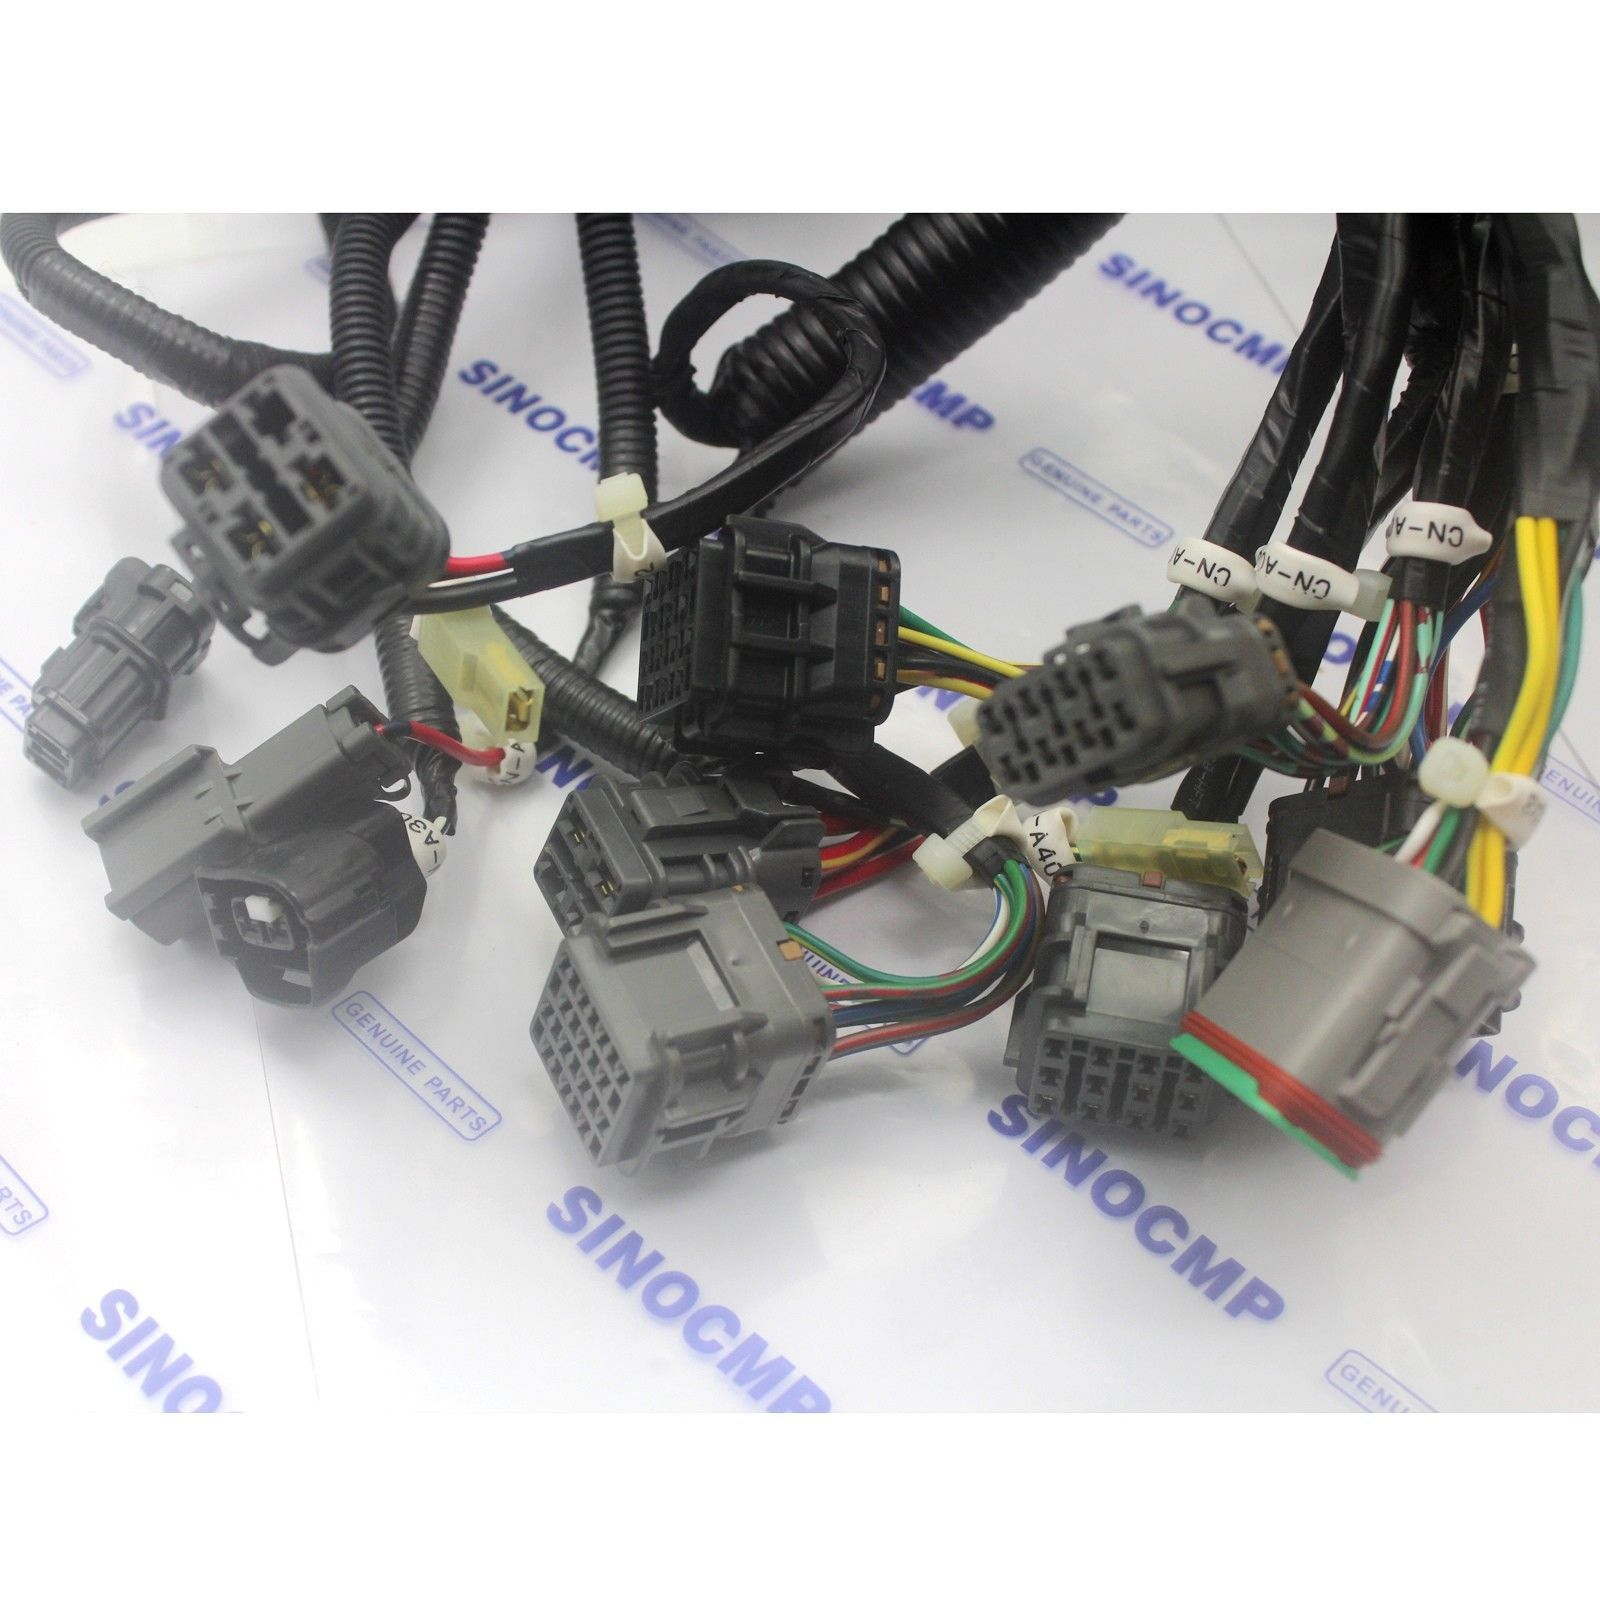 20y 06 31611 Outside External Wiring Harness And 50 Similar Items Komatsu For Excavator Pc200 7